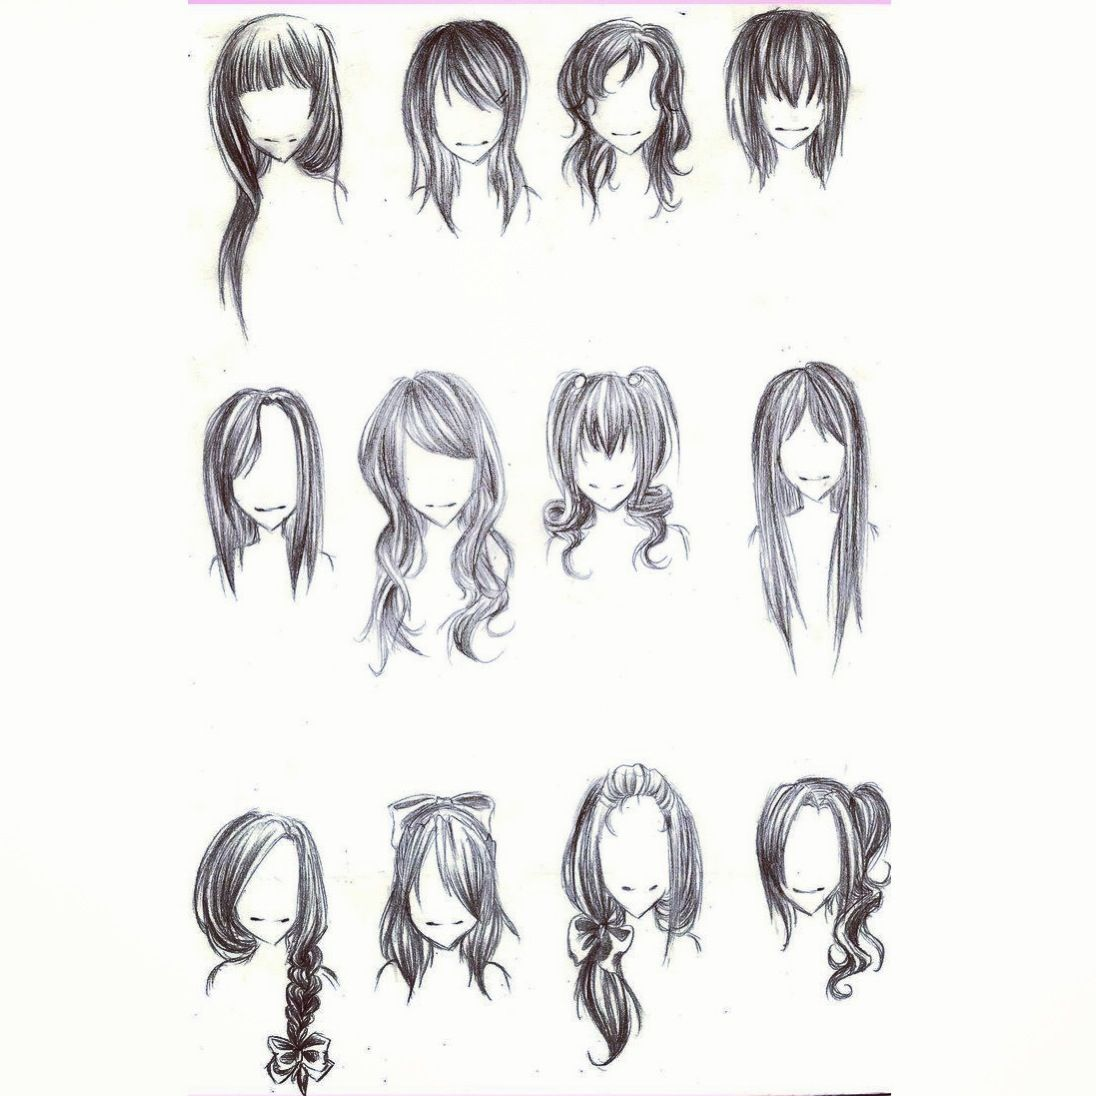 Anime Girl Hairstyles In Real Life: Various Hair Styles If You're Stuck. Curly, Straight, Bob